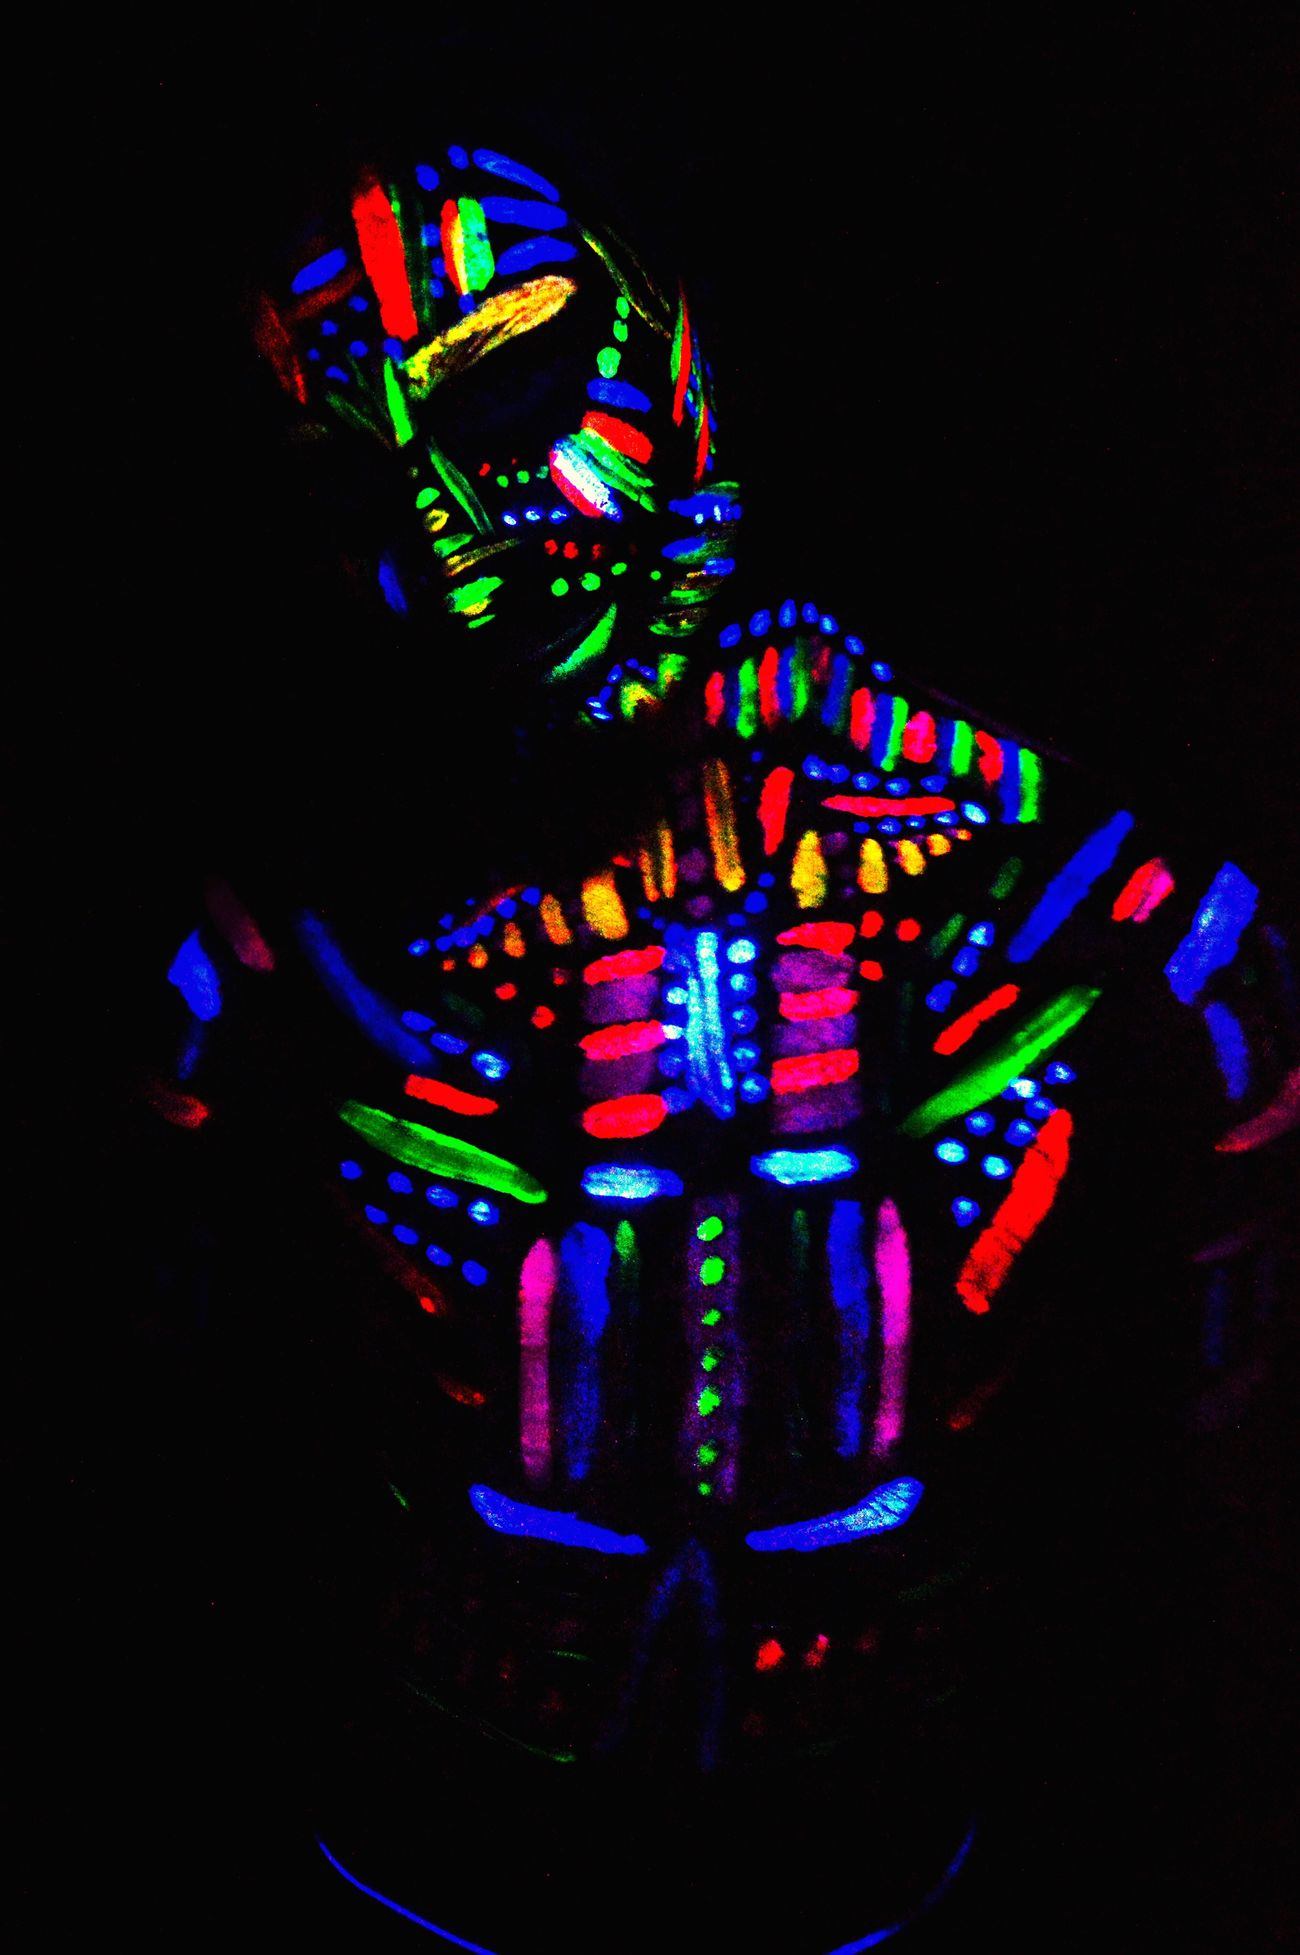 Photography Ultraviolet Photography Shoot UV  Paint Glow Flouresent Light Lights Studio Shot Model Scary Tribe Photographer Project Colour Creative Studio Studio Photography Shapes Darkroom Male Focal Point Pose Ruleofthirds Forground